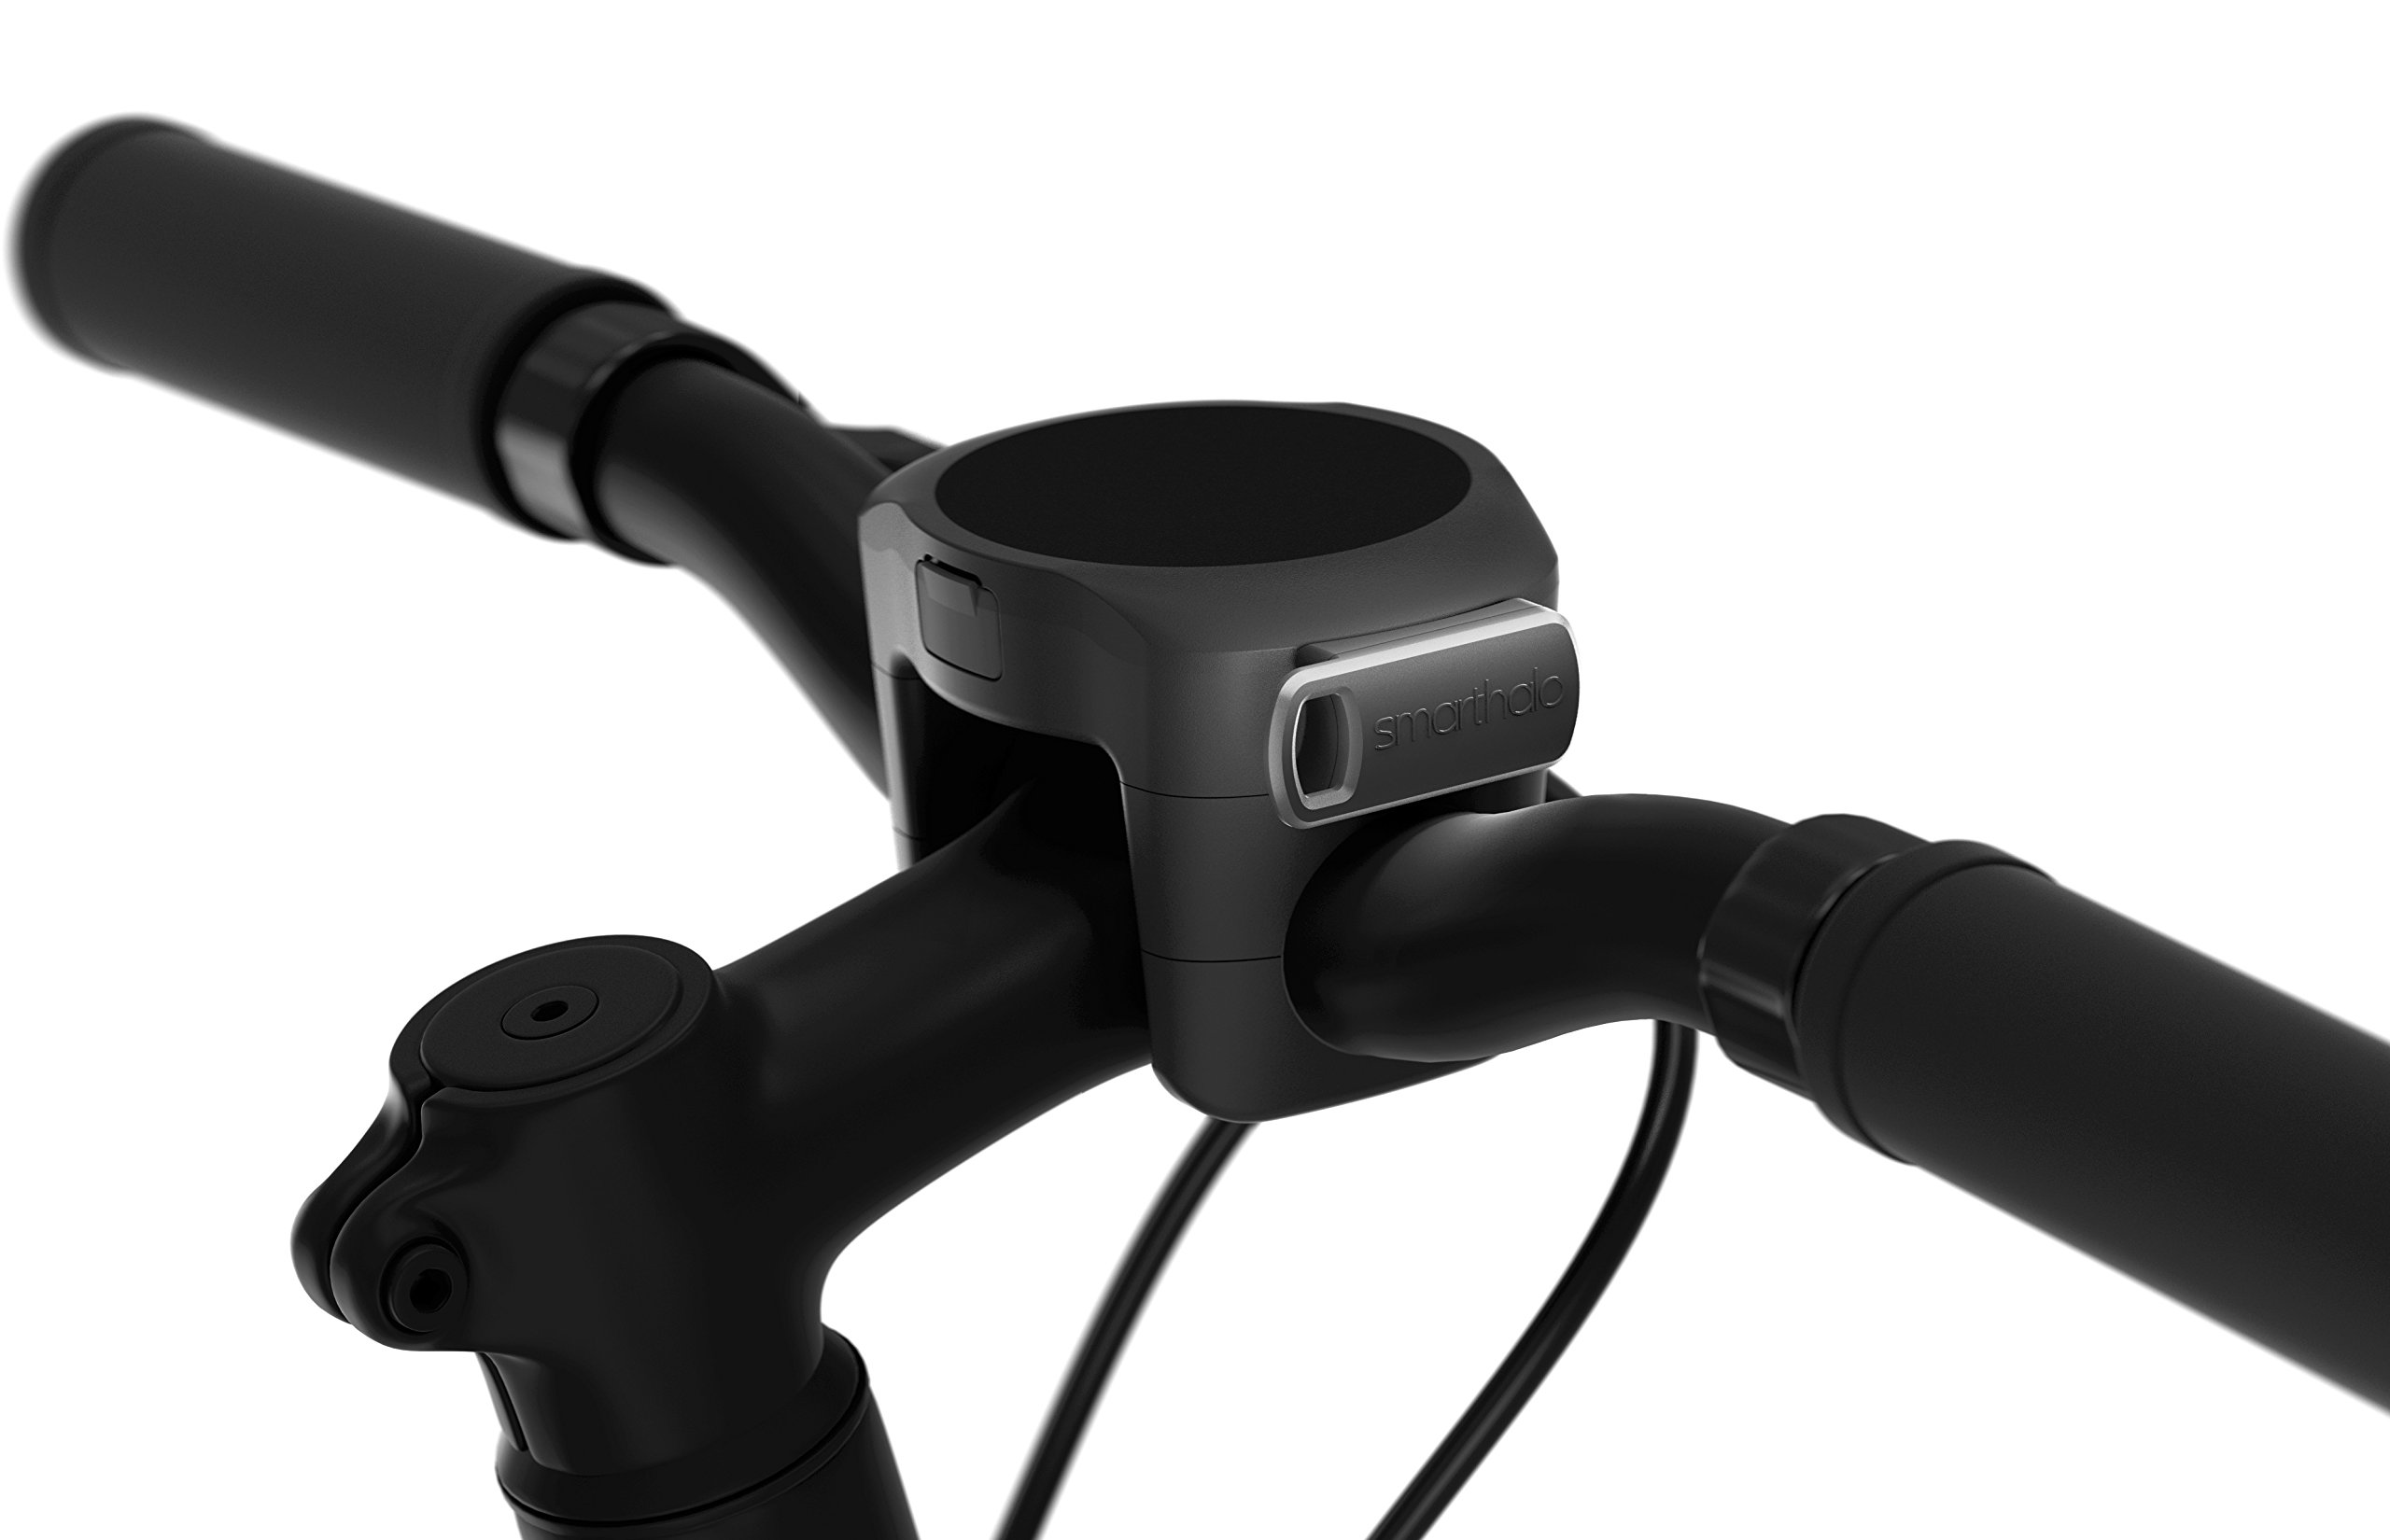 SmartHalo Premium Pack | Smart Bike Accessory Cycling Computer With Light, GPS & Navigation, Anti-Theft Alarm, Fitness Tracker, Speedometer, Odometer, and Assistant | 2x Base Mount 2x Key Included by SmartHalo (Image #3)